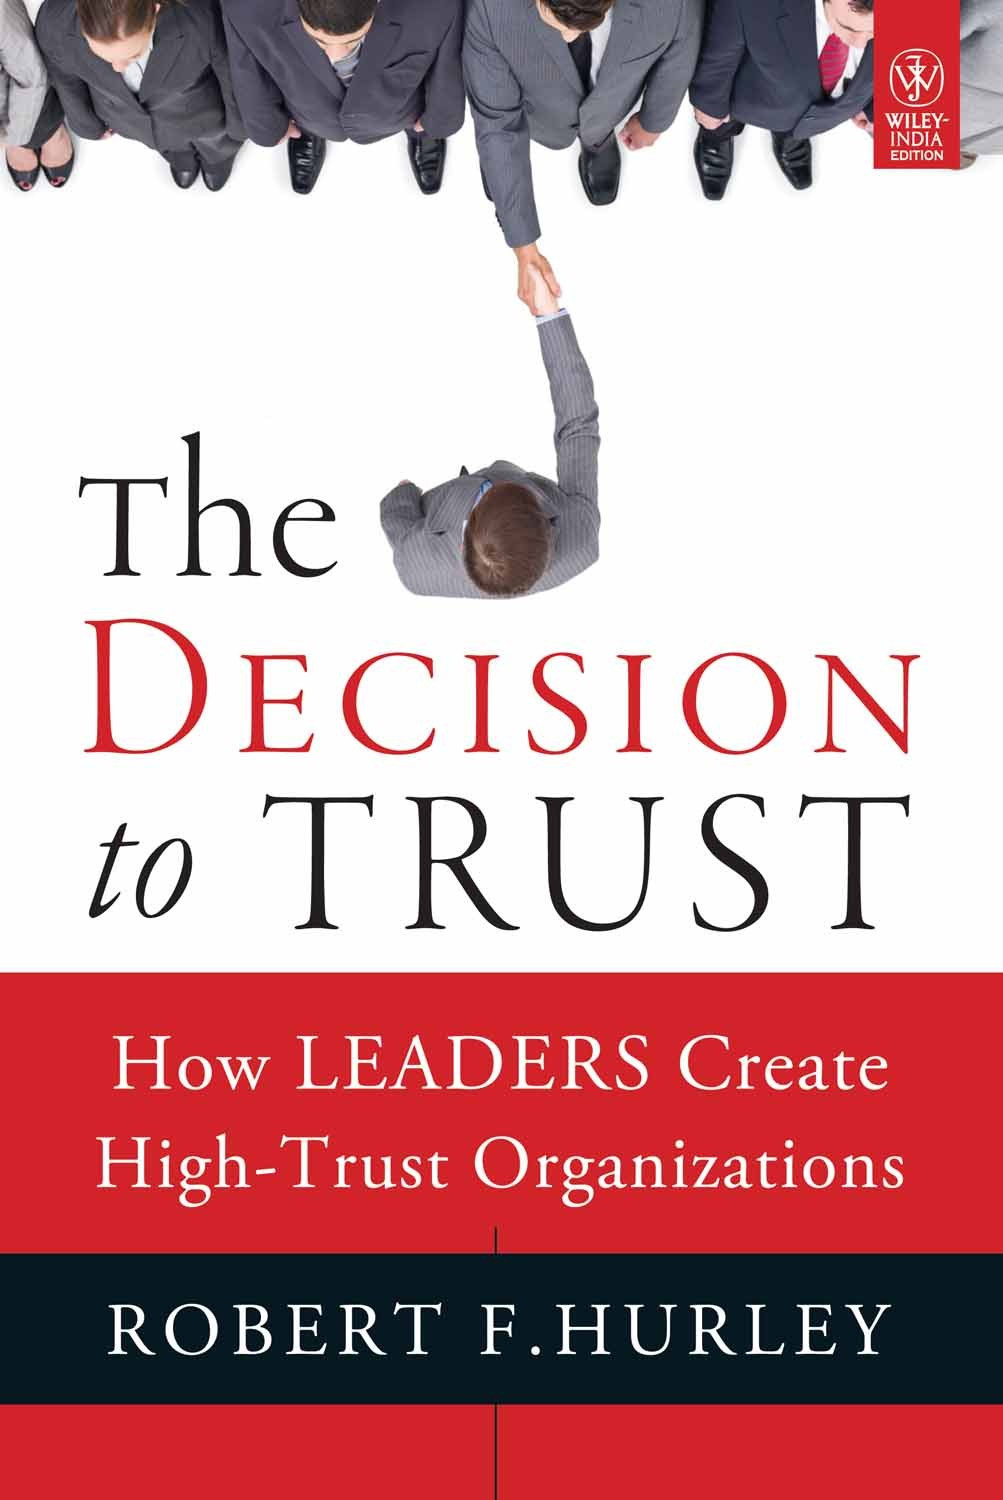 the-decision-to-trust-how-leaders-create-high-trust-organizations